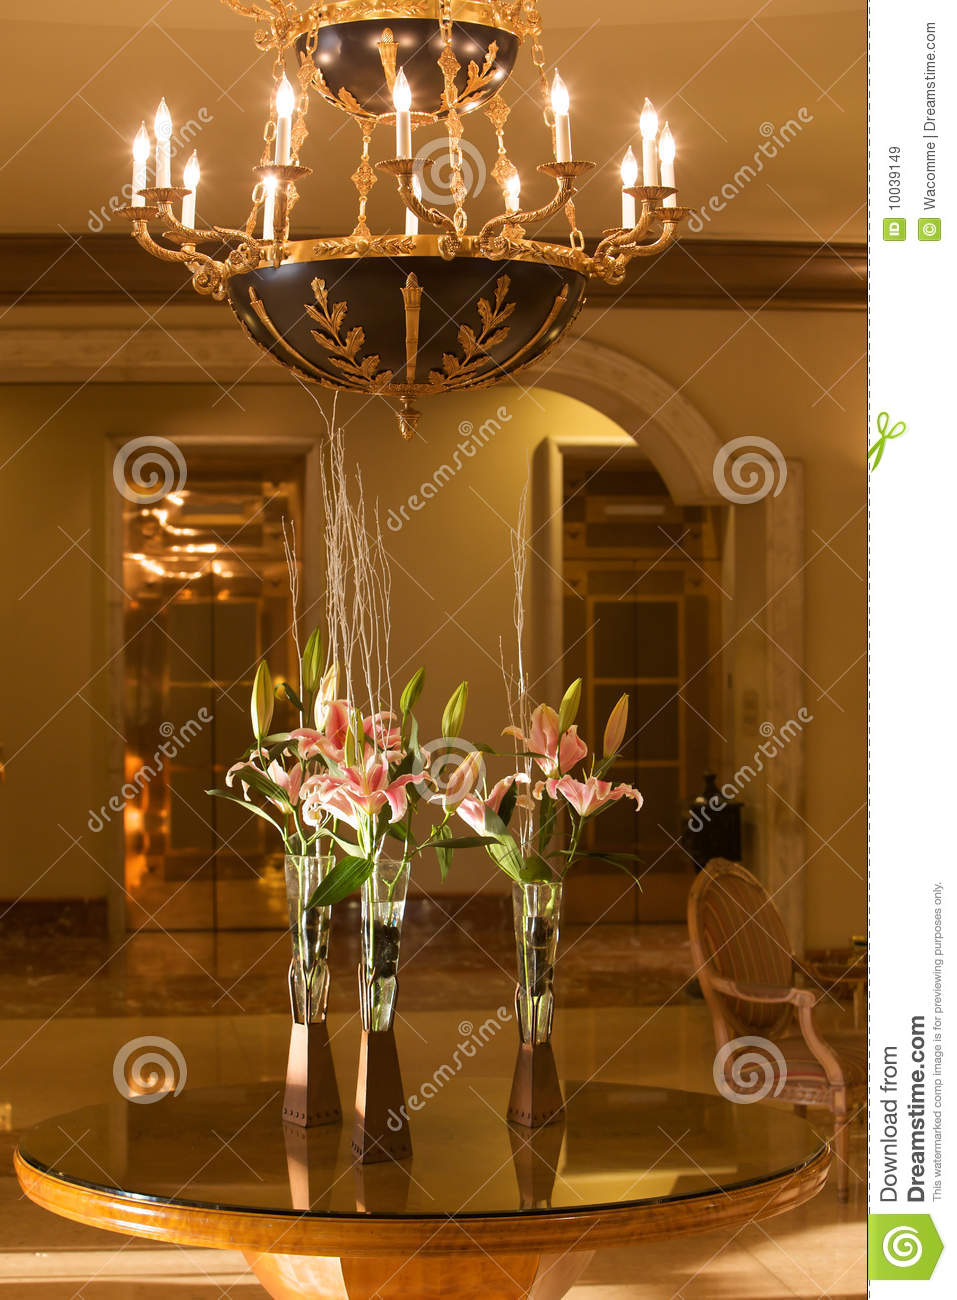 Table Tulip Hotel Lobby With Chandelier And Flowers Stock Image